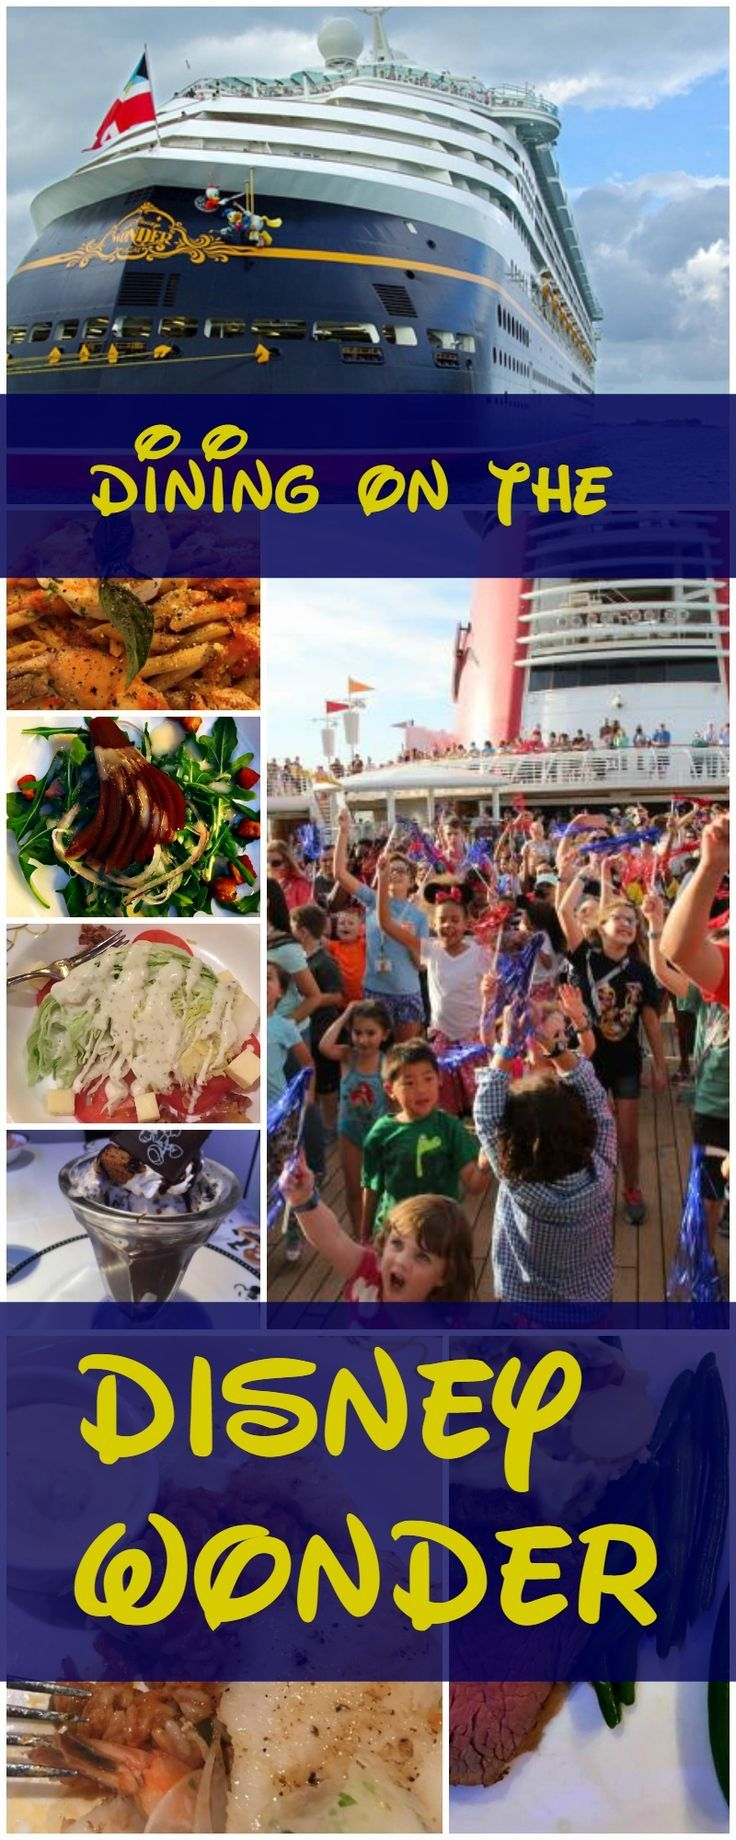 Everything you ever wanted to know about dining on the Disney Wonder |Disney Wonder|Disney Cruise Line|Cruise tips|Cruise ideas|Cruise with kids|eating on a cruise|dining options on a disney cruise|dining options on Disney Cruise Line|Disney Cruise Line|